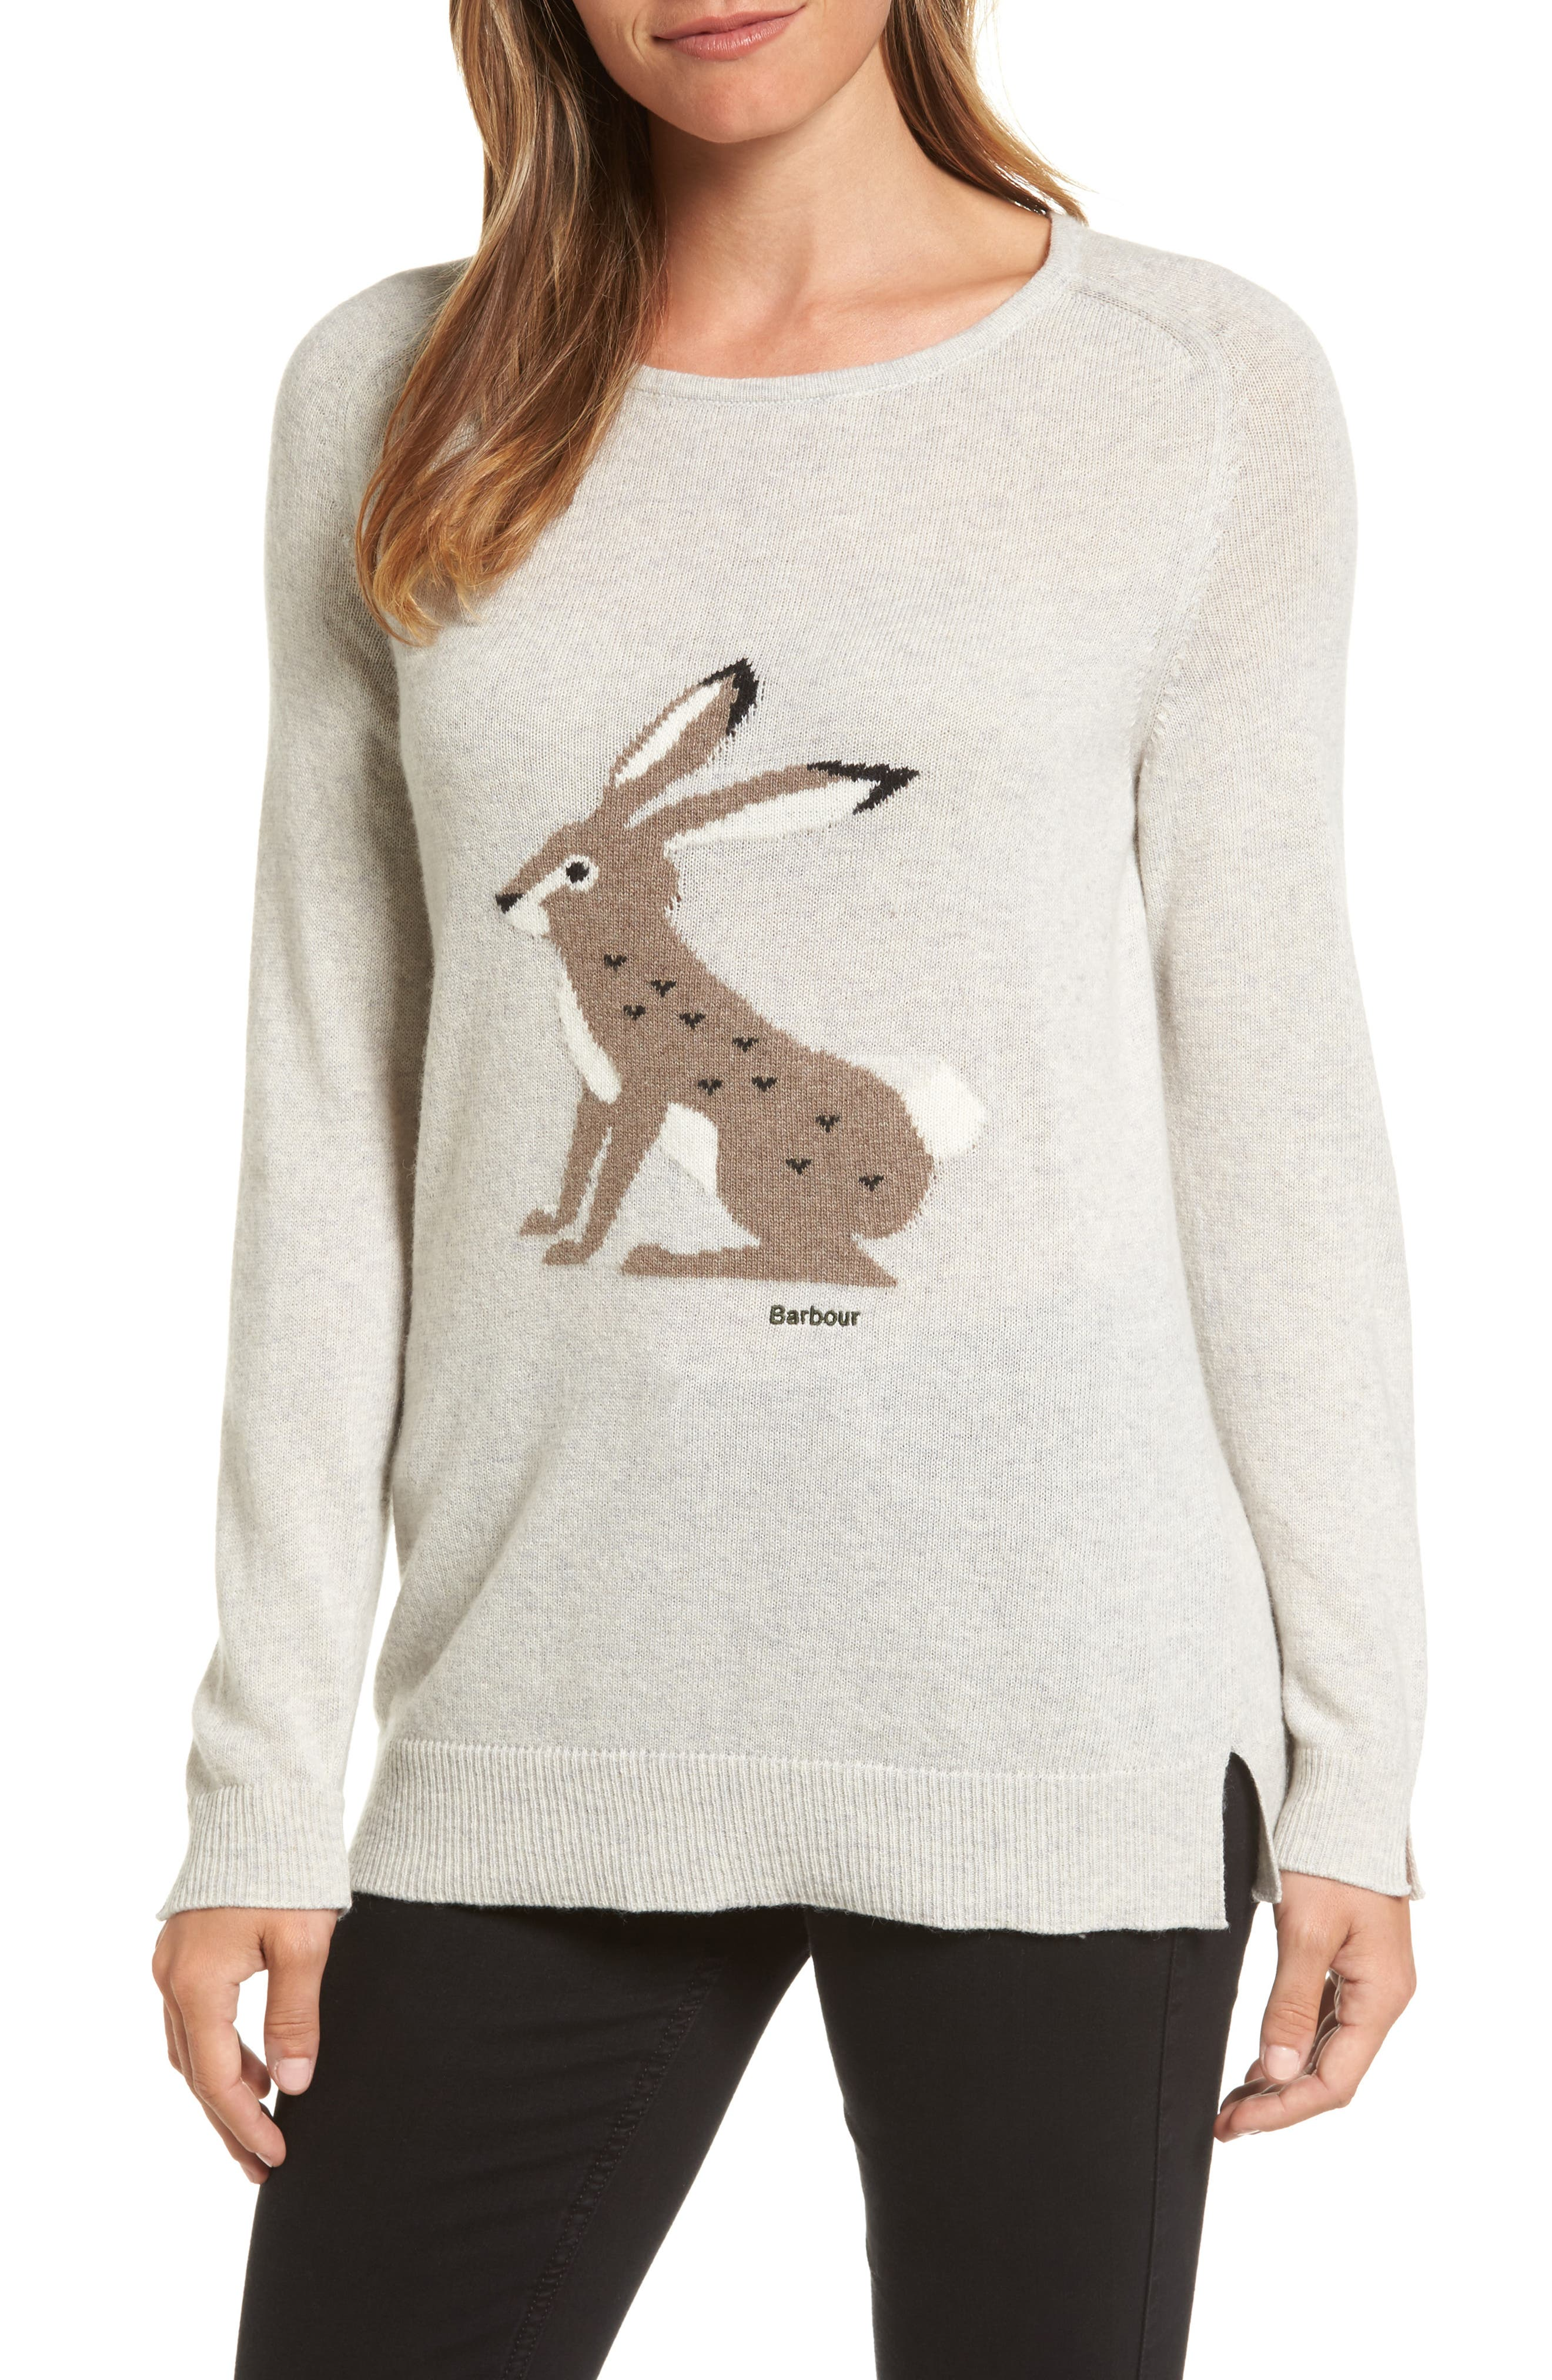 Barbour Intarsia Hare Wool Blend Sweater